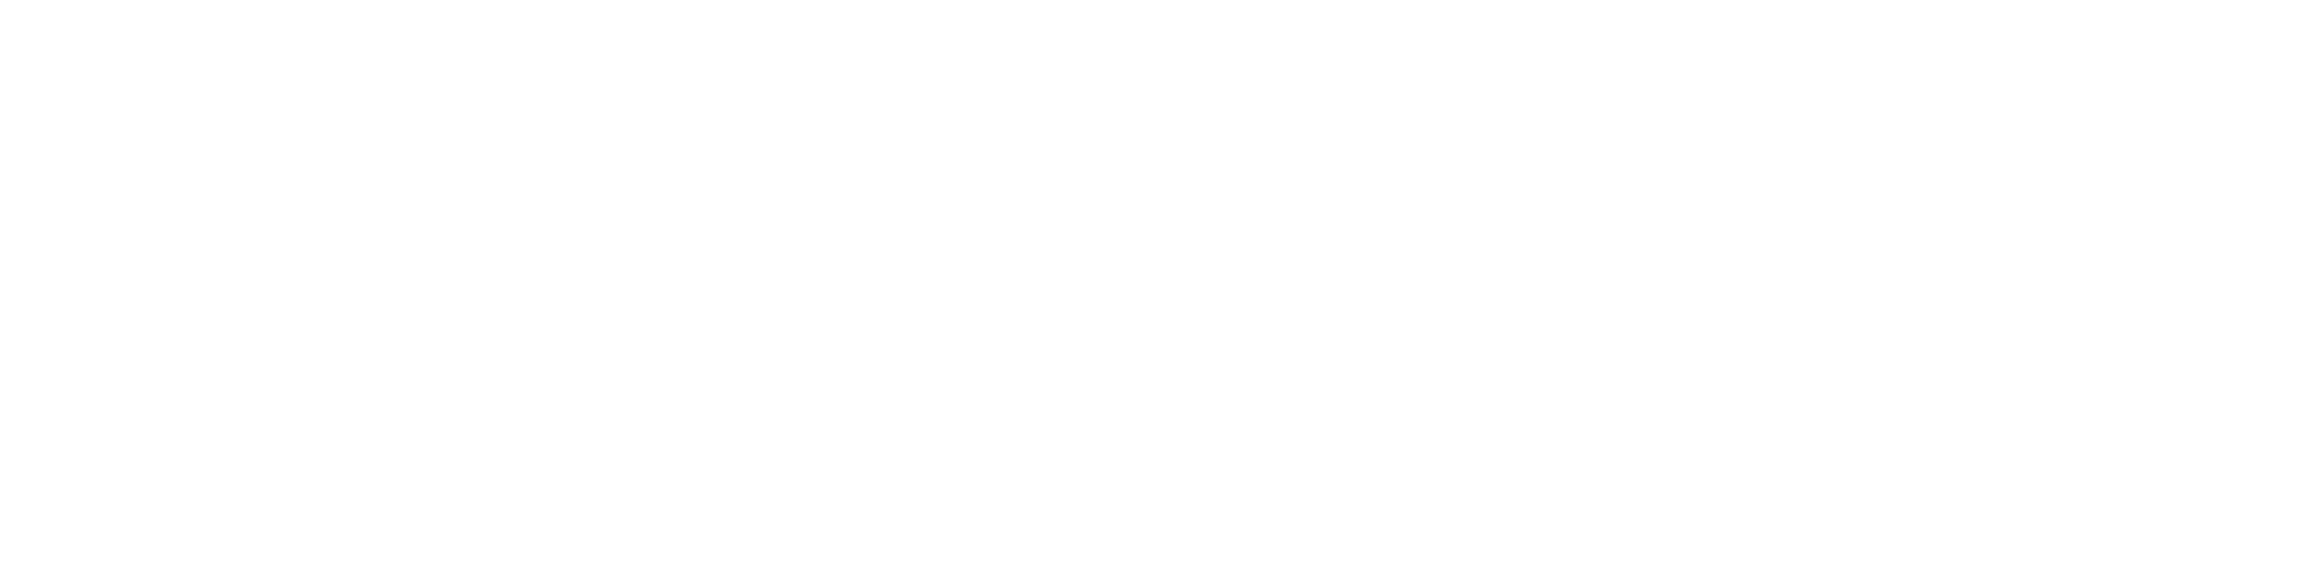 CX Exchange Travel & Hospitality 2021